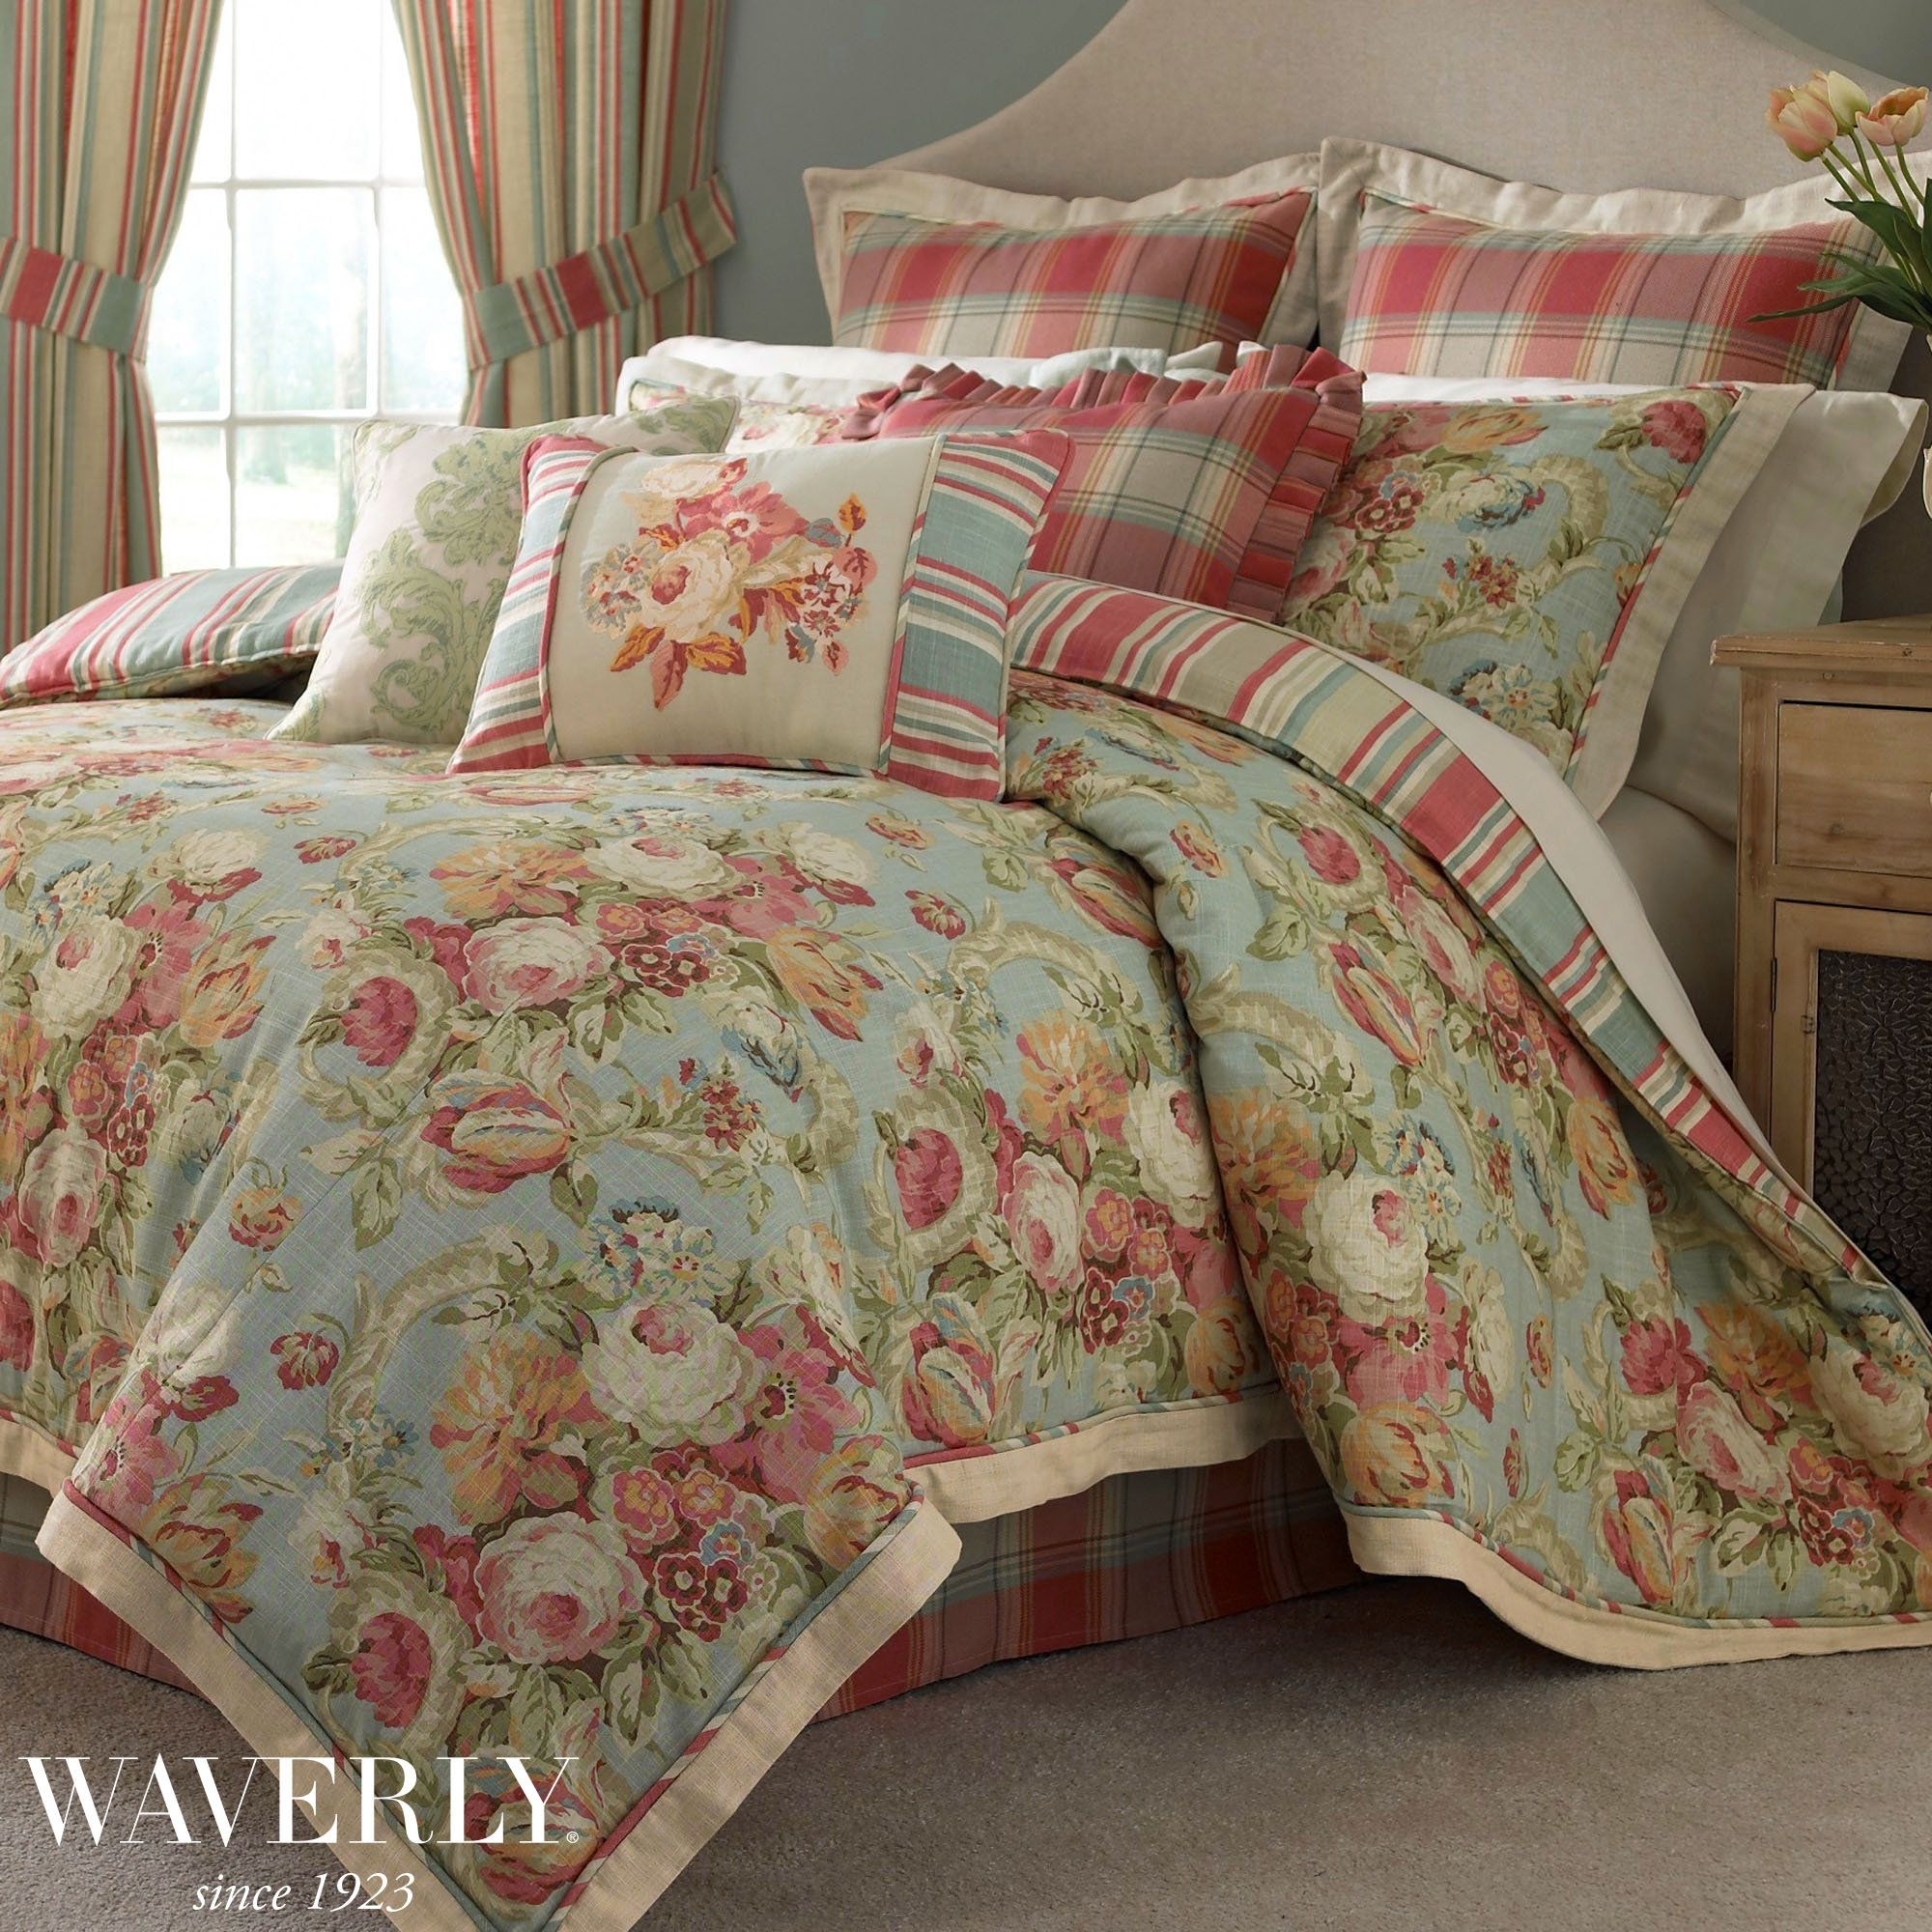 Spring Bling Floral Comforter Bedding by Waverly Luxury